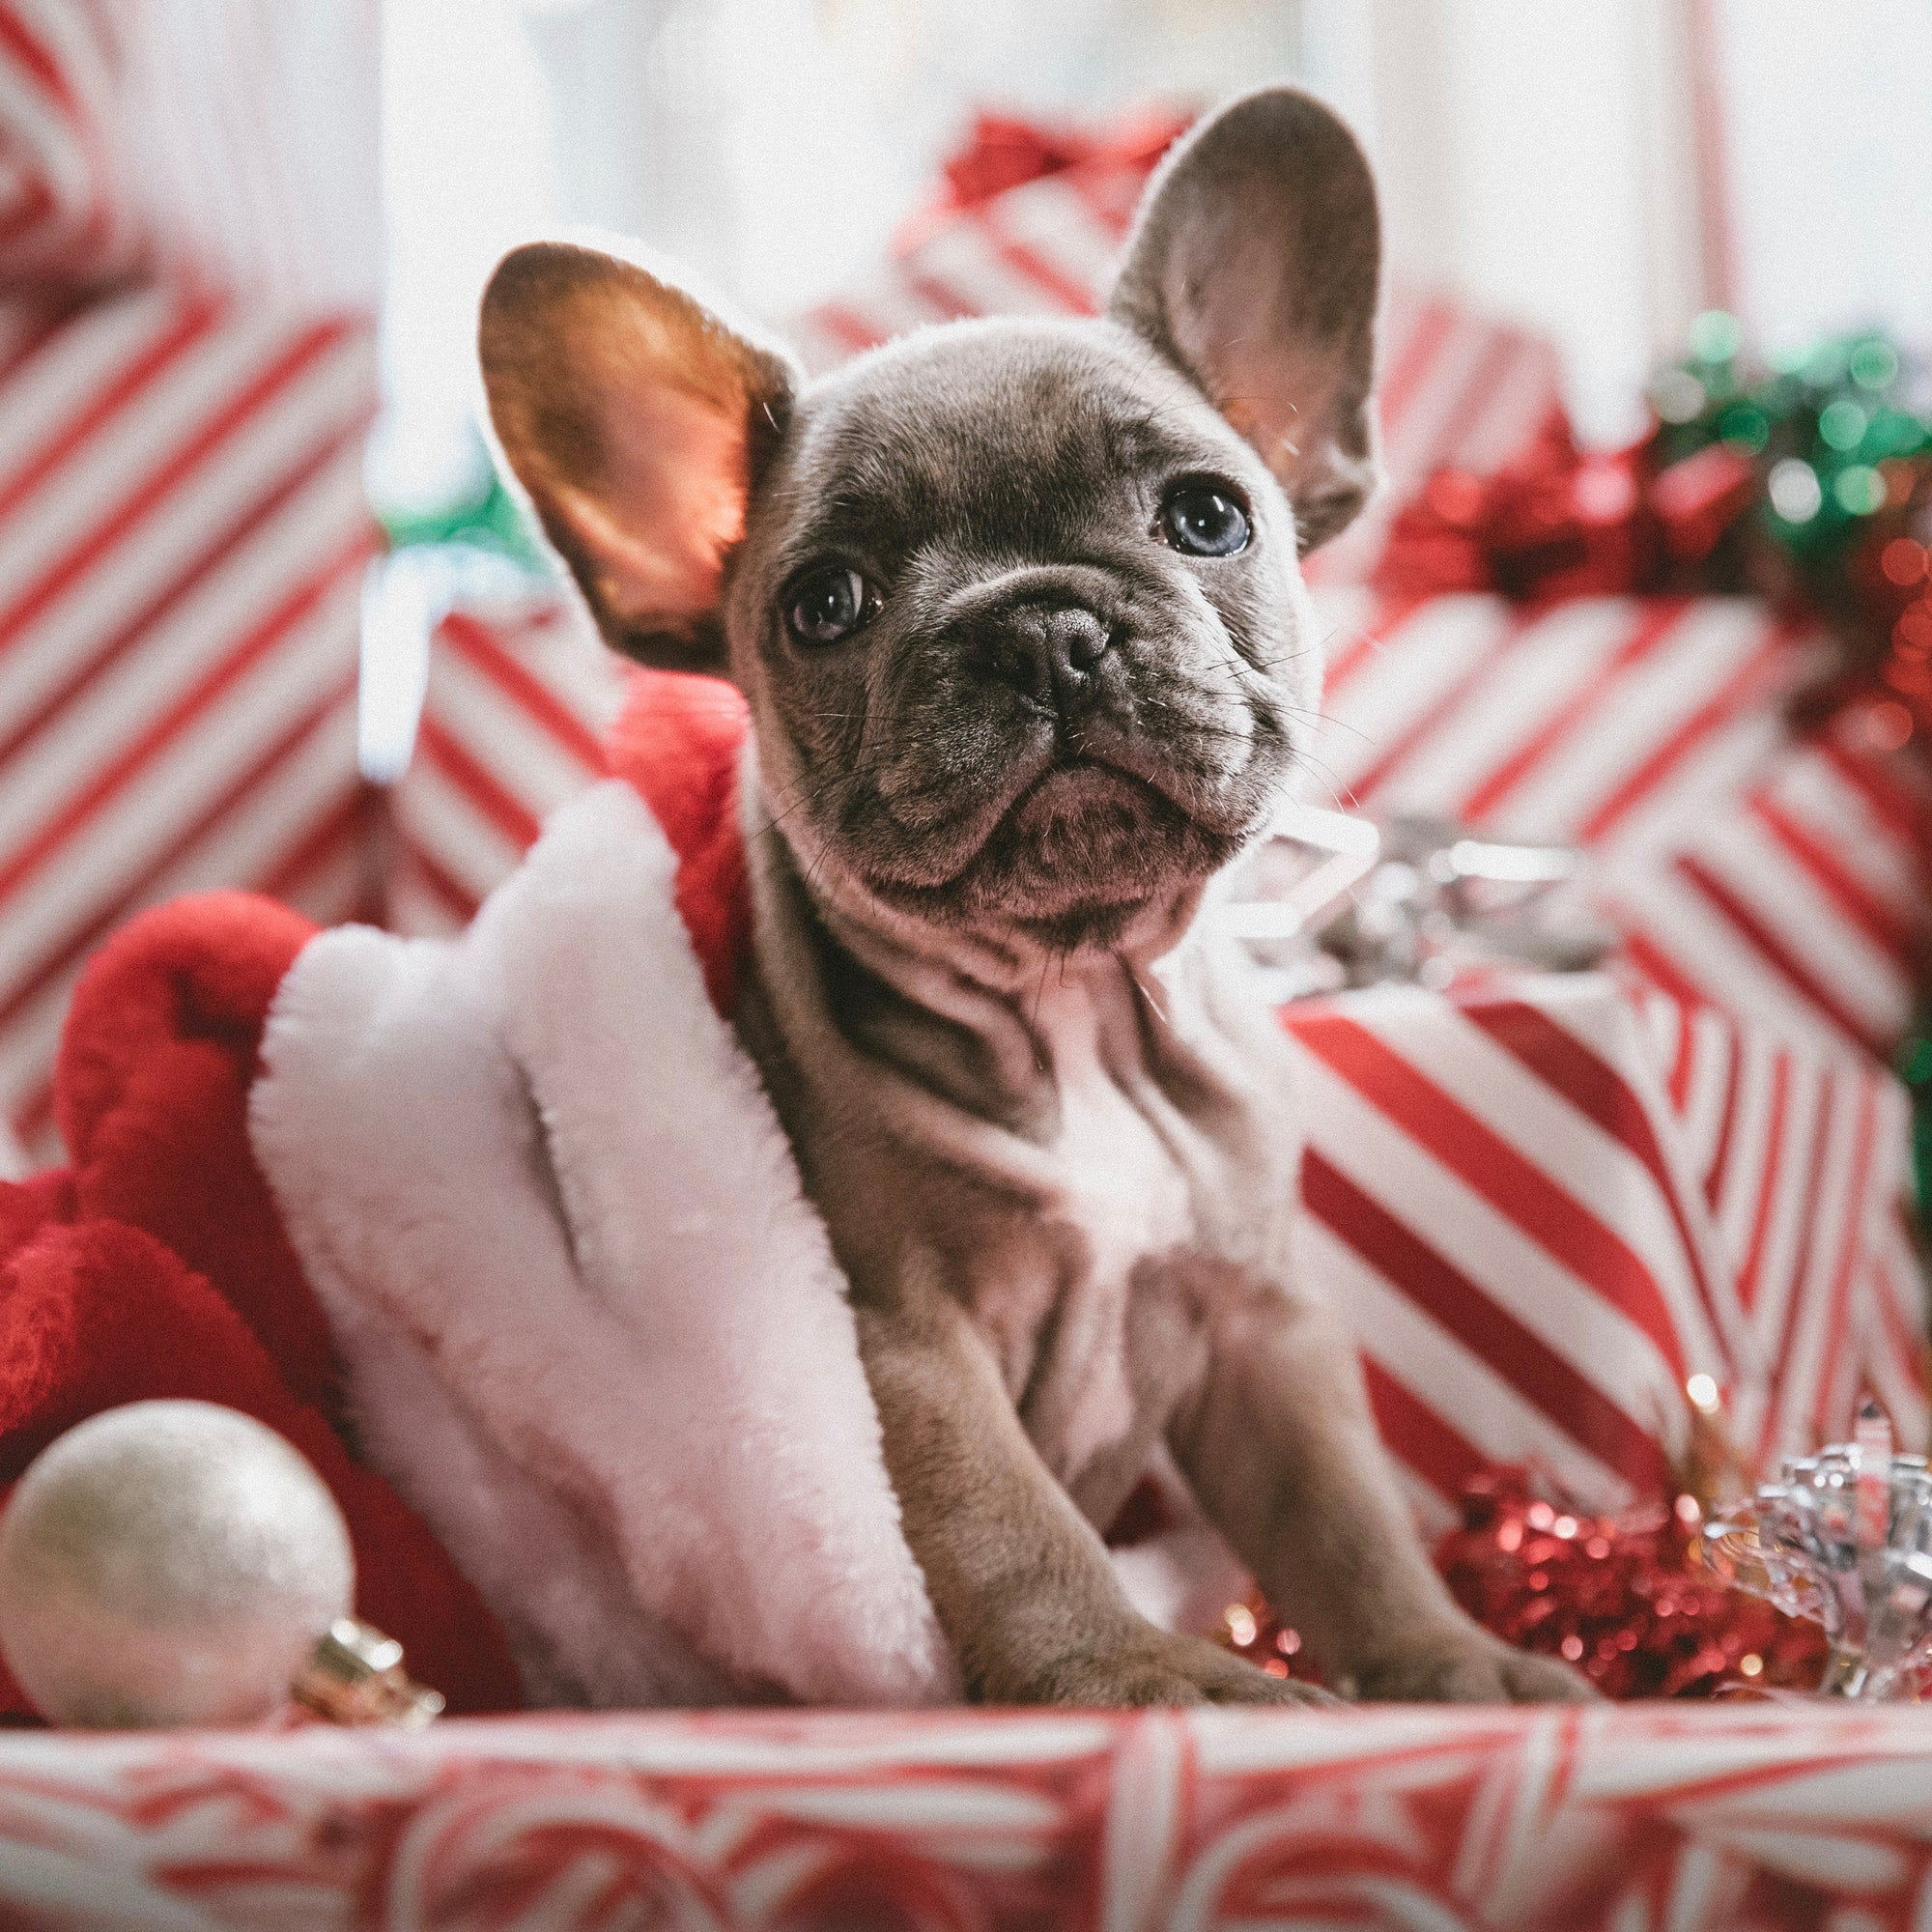 puppy in a stocking in front of presents